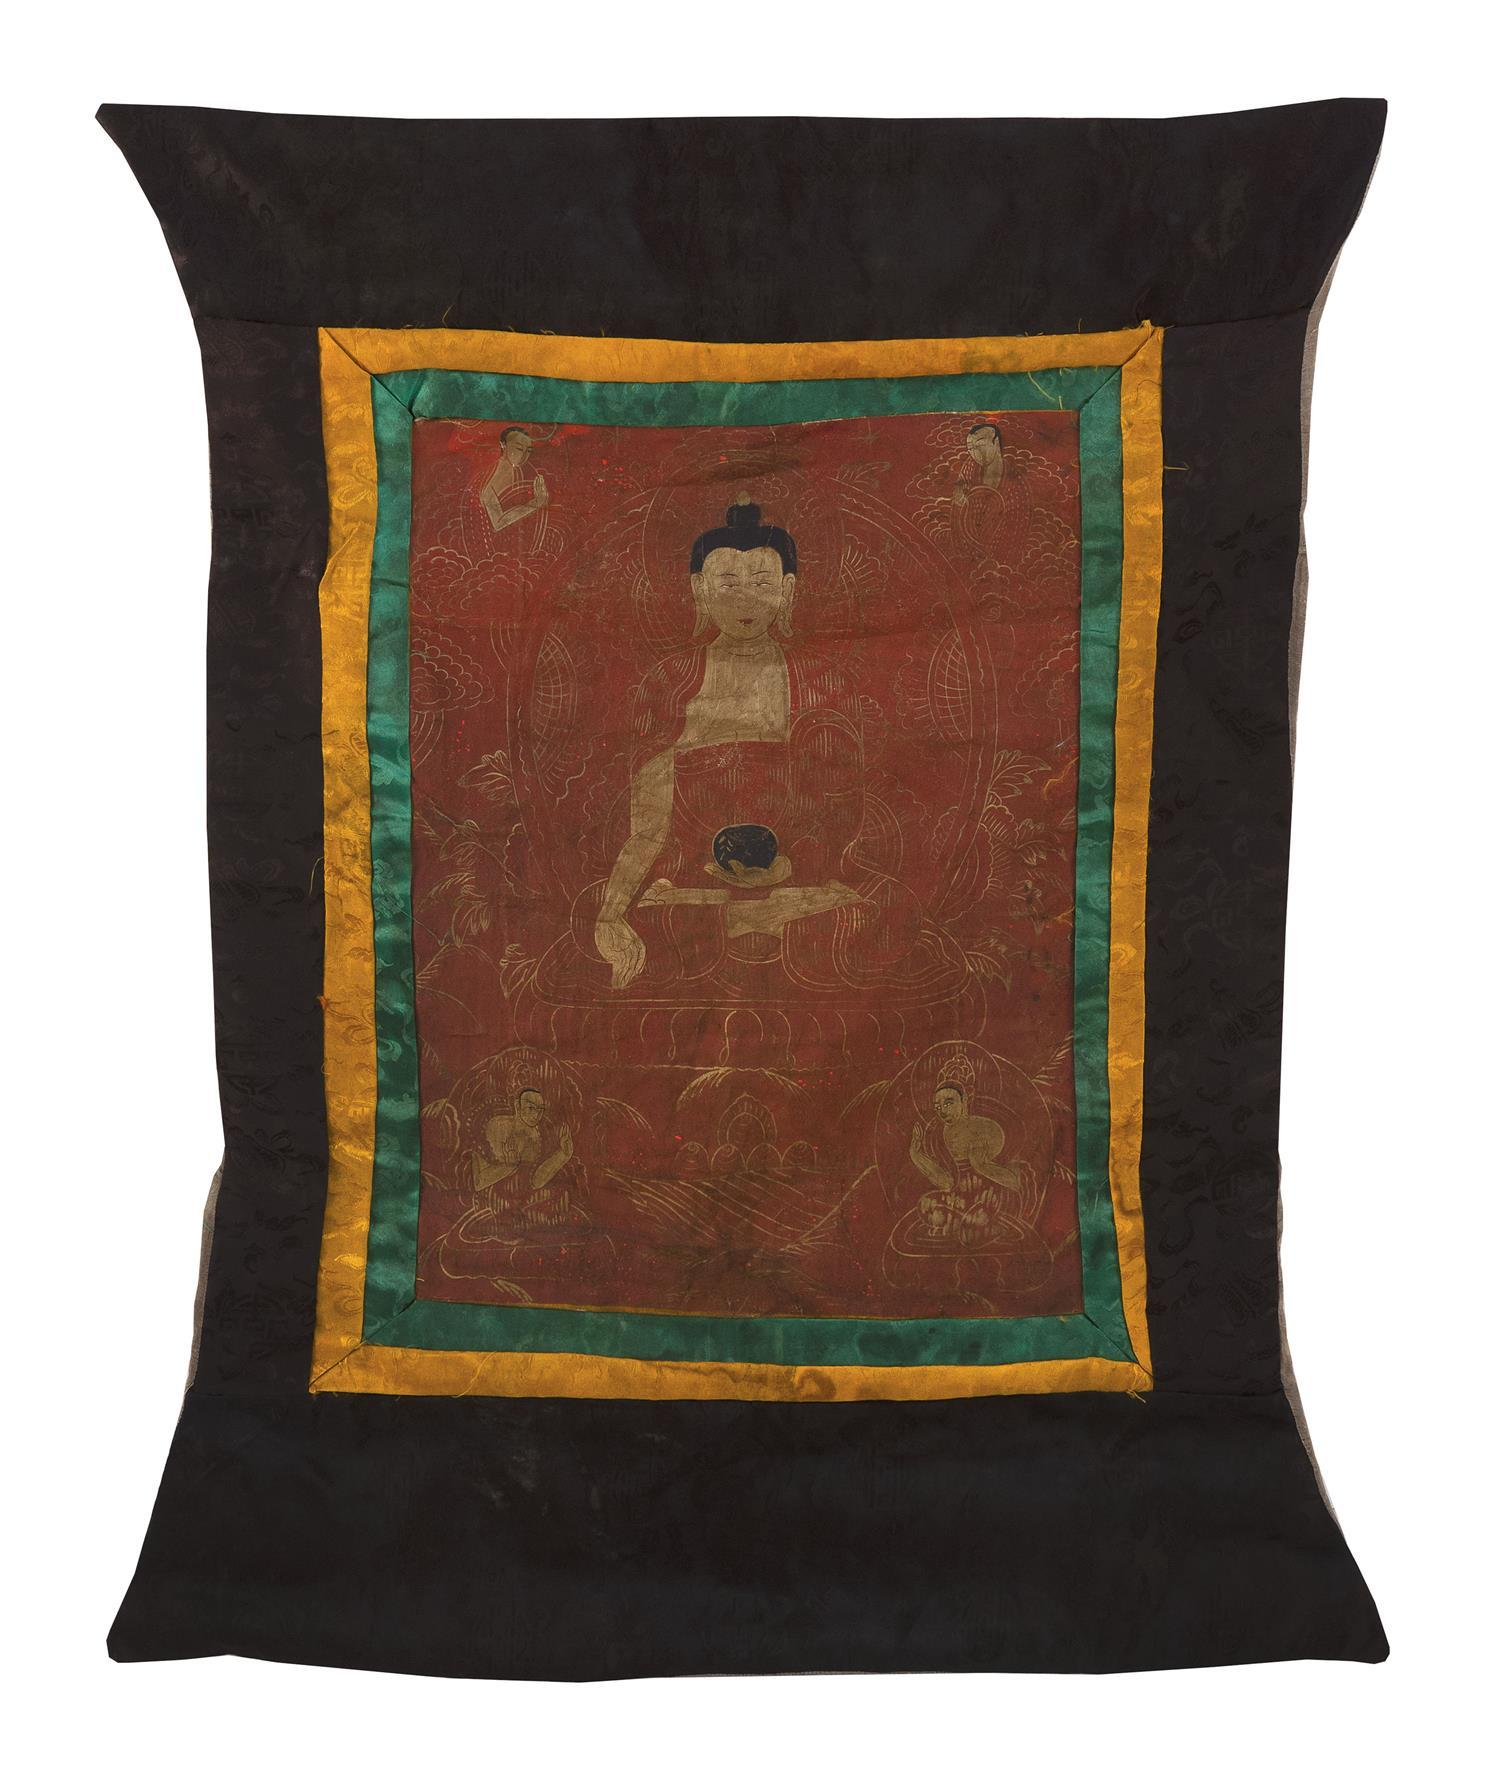 """TIBETAN THANKA Depicting Buddha enthroned with four attendants. Executed in gold on a red ground with some blue highlights. 22"""" x 17..."""